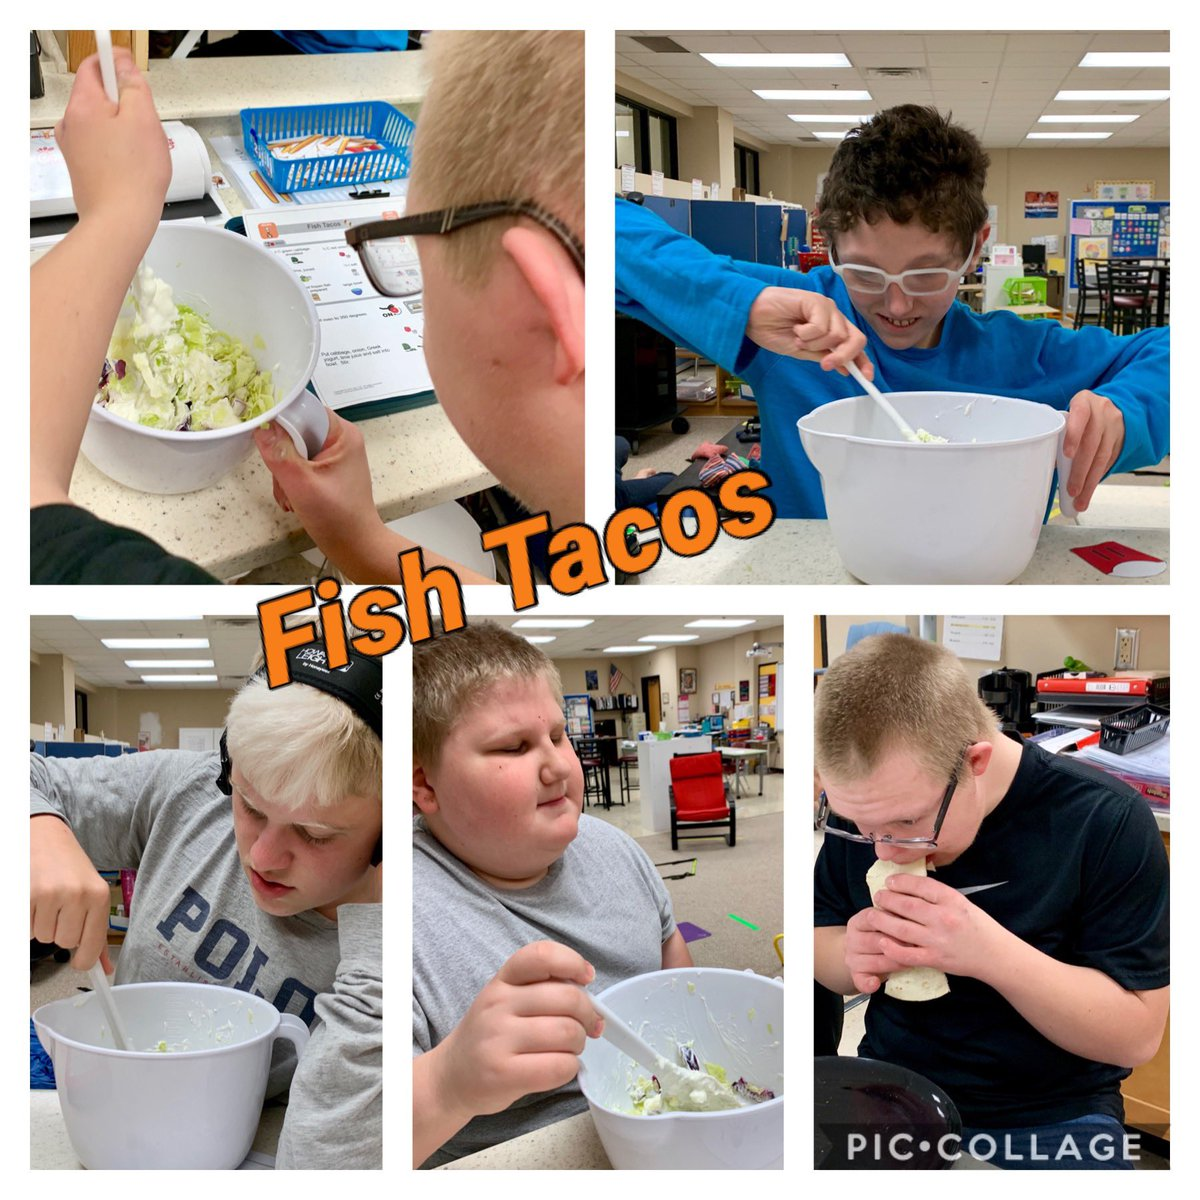 Thank you @n2y for the easy fish taco recipe!! They were a hit! #weRmilan #n2y https://t.co/Wn2wMtn7H0